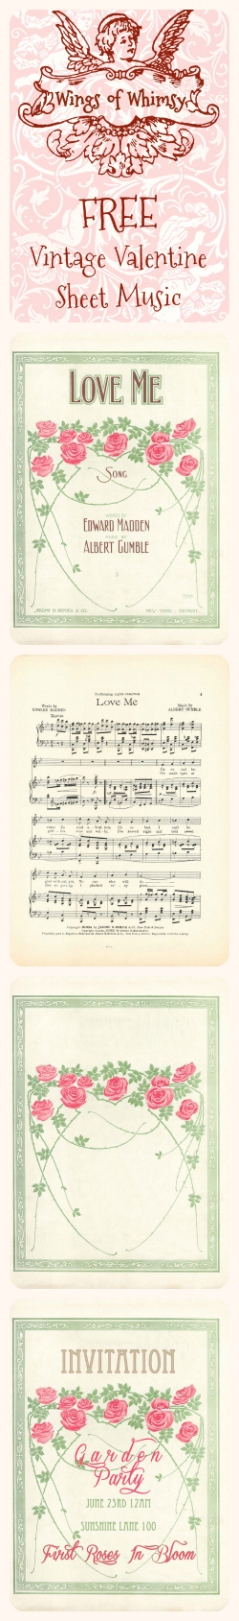 Wings of Whimsy: Love Me Sheet Music Pinfographic